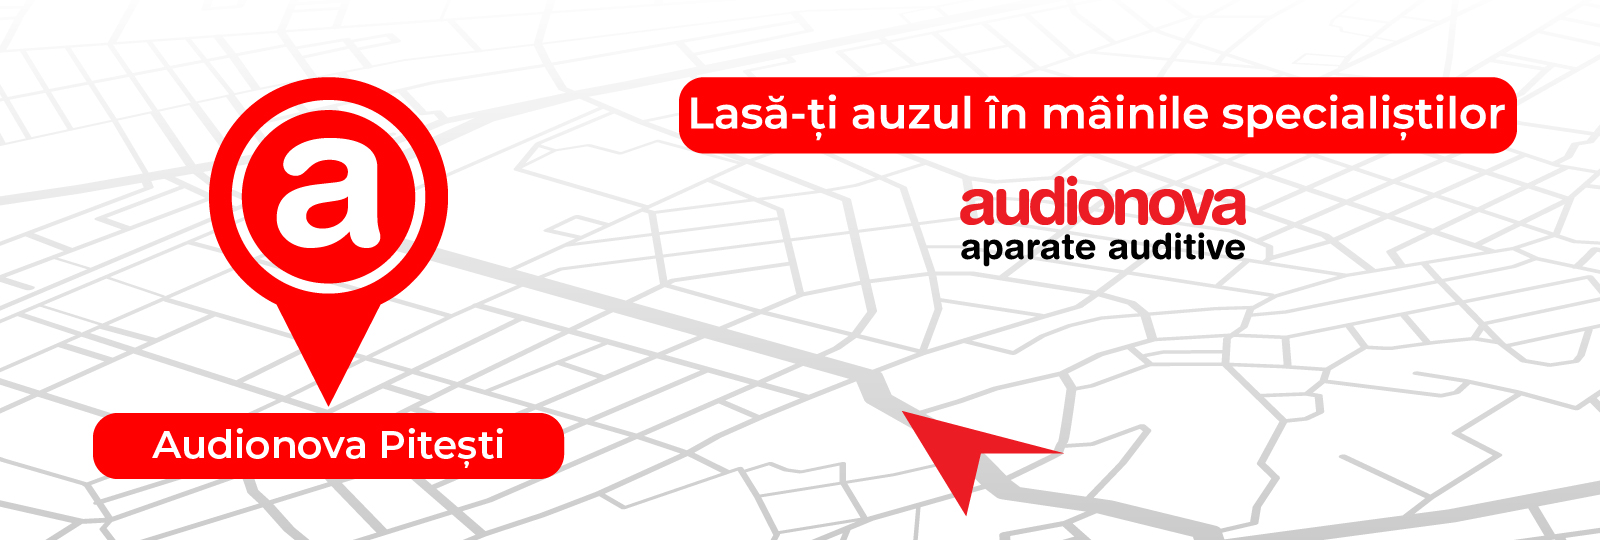 aparate auditive pitesti